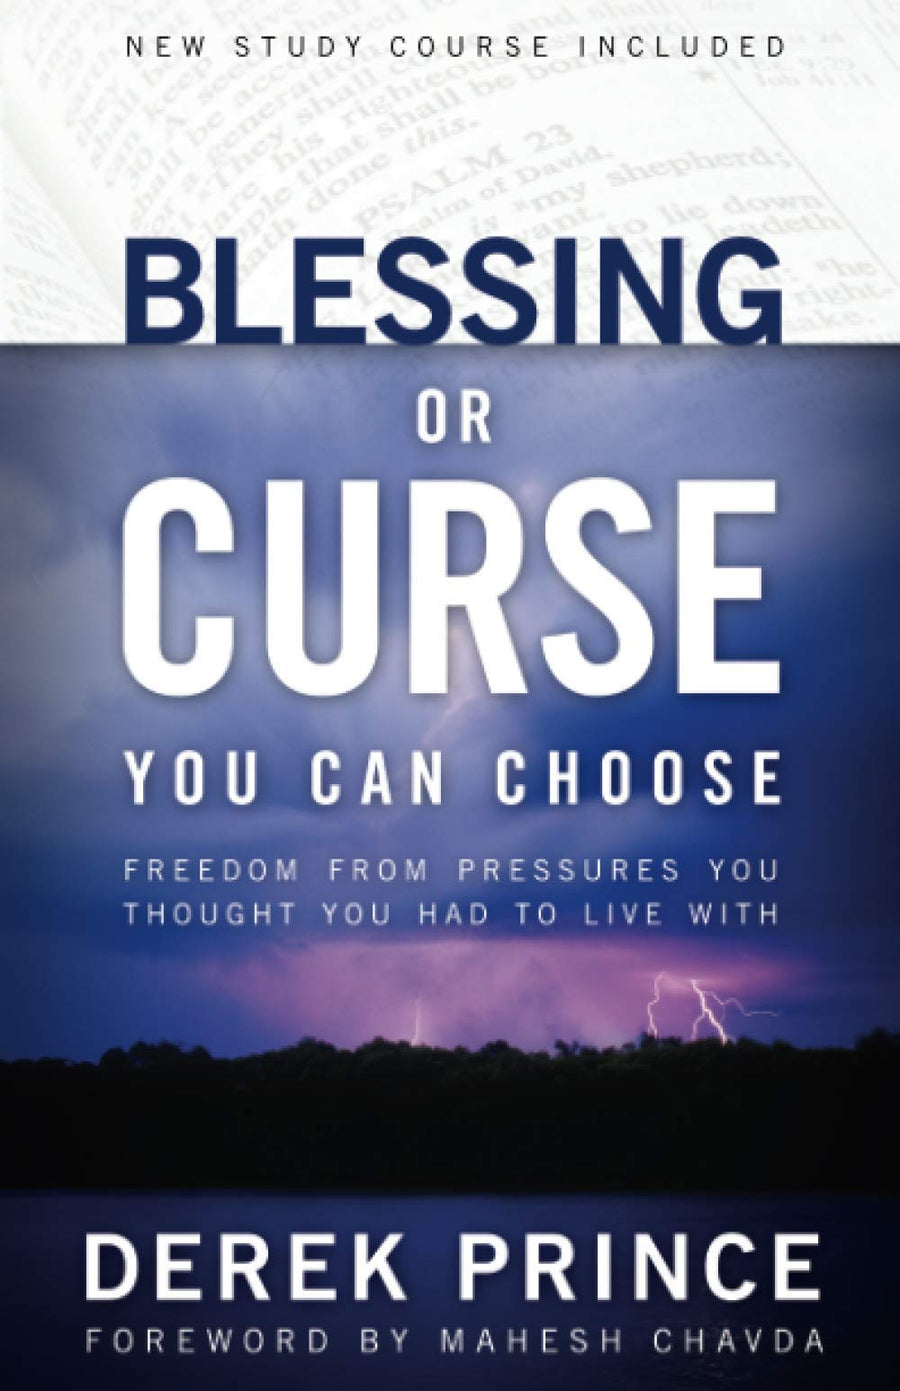 Blessing or Curse: You Can Choose [Paperback] Prince, Derek and Chavda, Mahesh